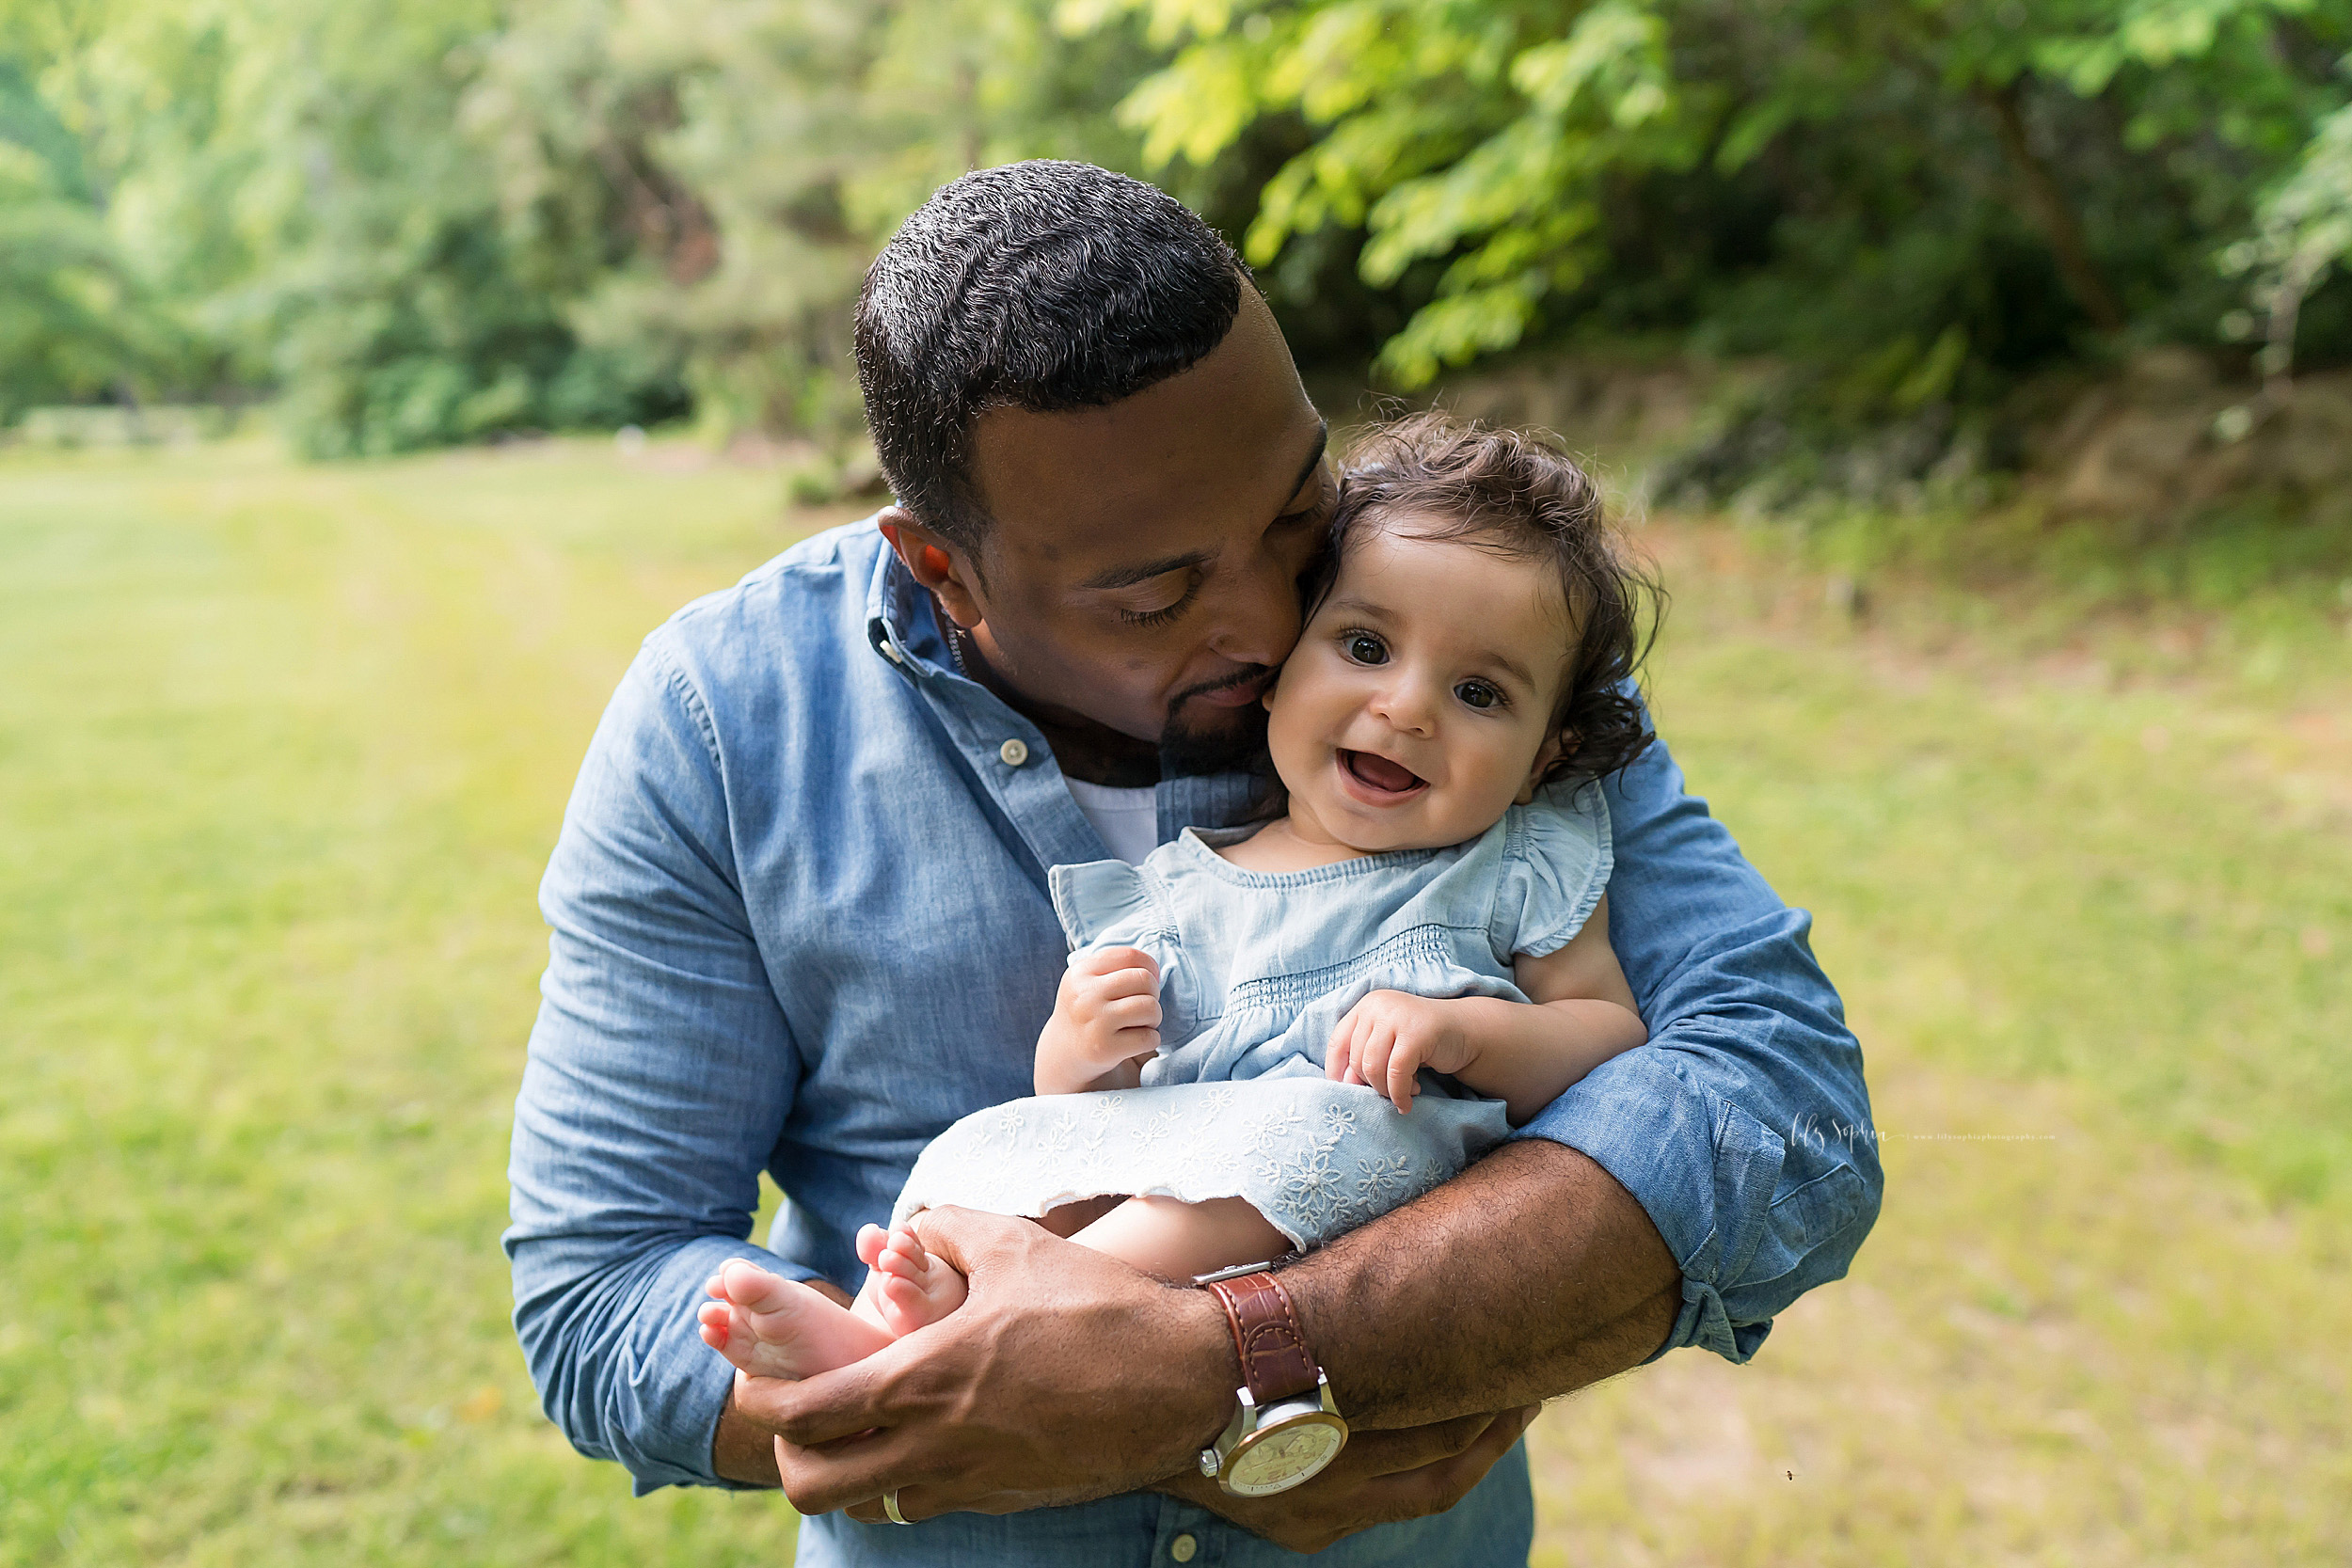 Photo of an African-American dad holding his precious baby girl taken by Lily Sophia Photography in an Atlanta garden.  Dad has his baby girl sitting in his arms as he holds her little feet.  He is whispering in her ear and the little girl is smiling.